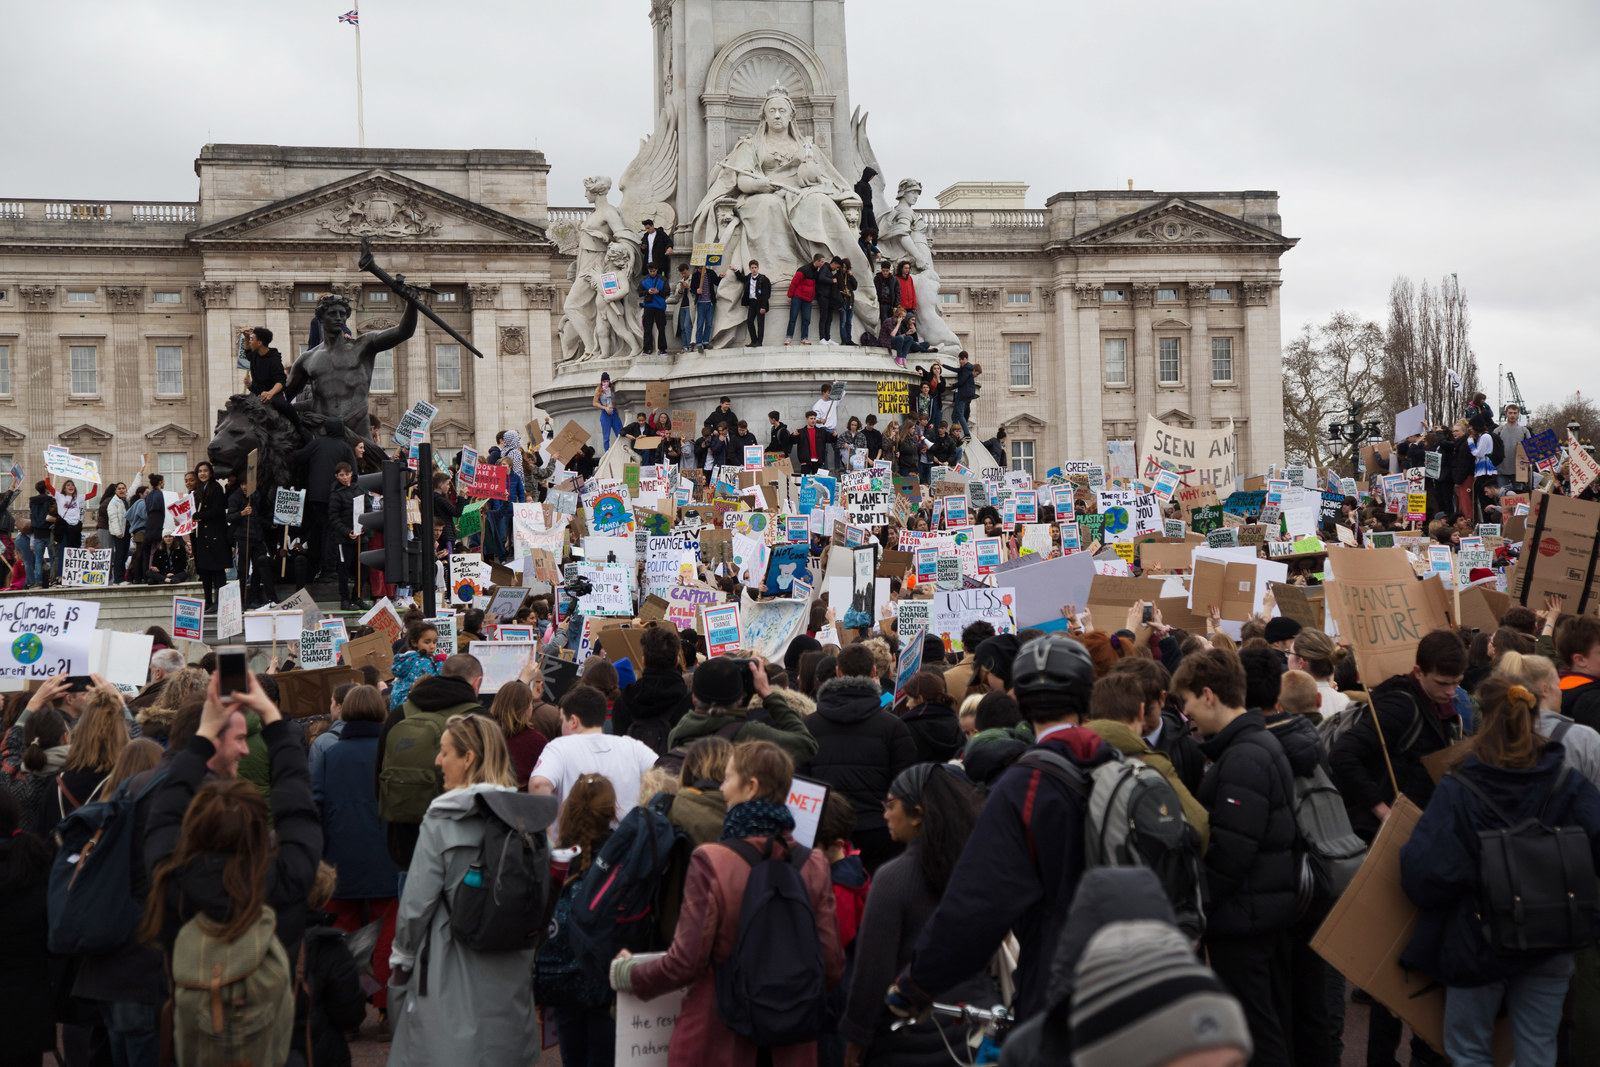 Teenagers Demanding Climate Change Reform Brought Central London To A Standstill After Taking Over Trafalgar Square